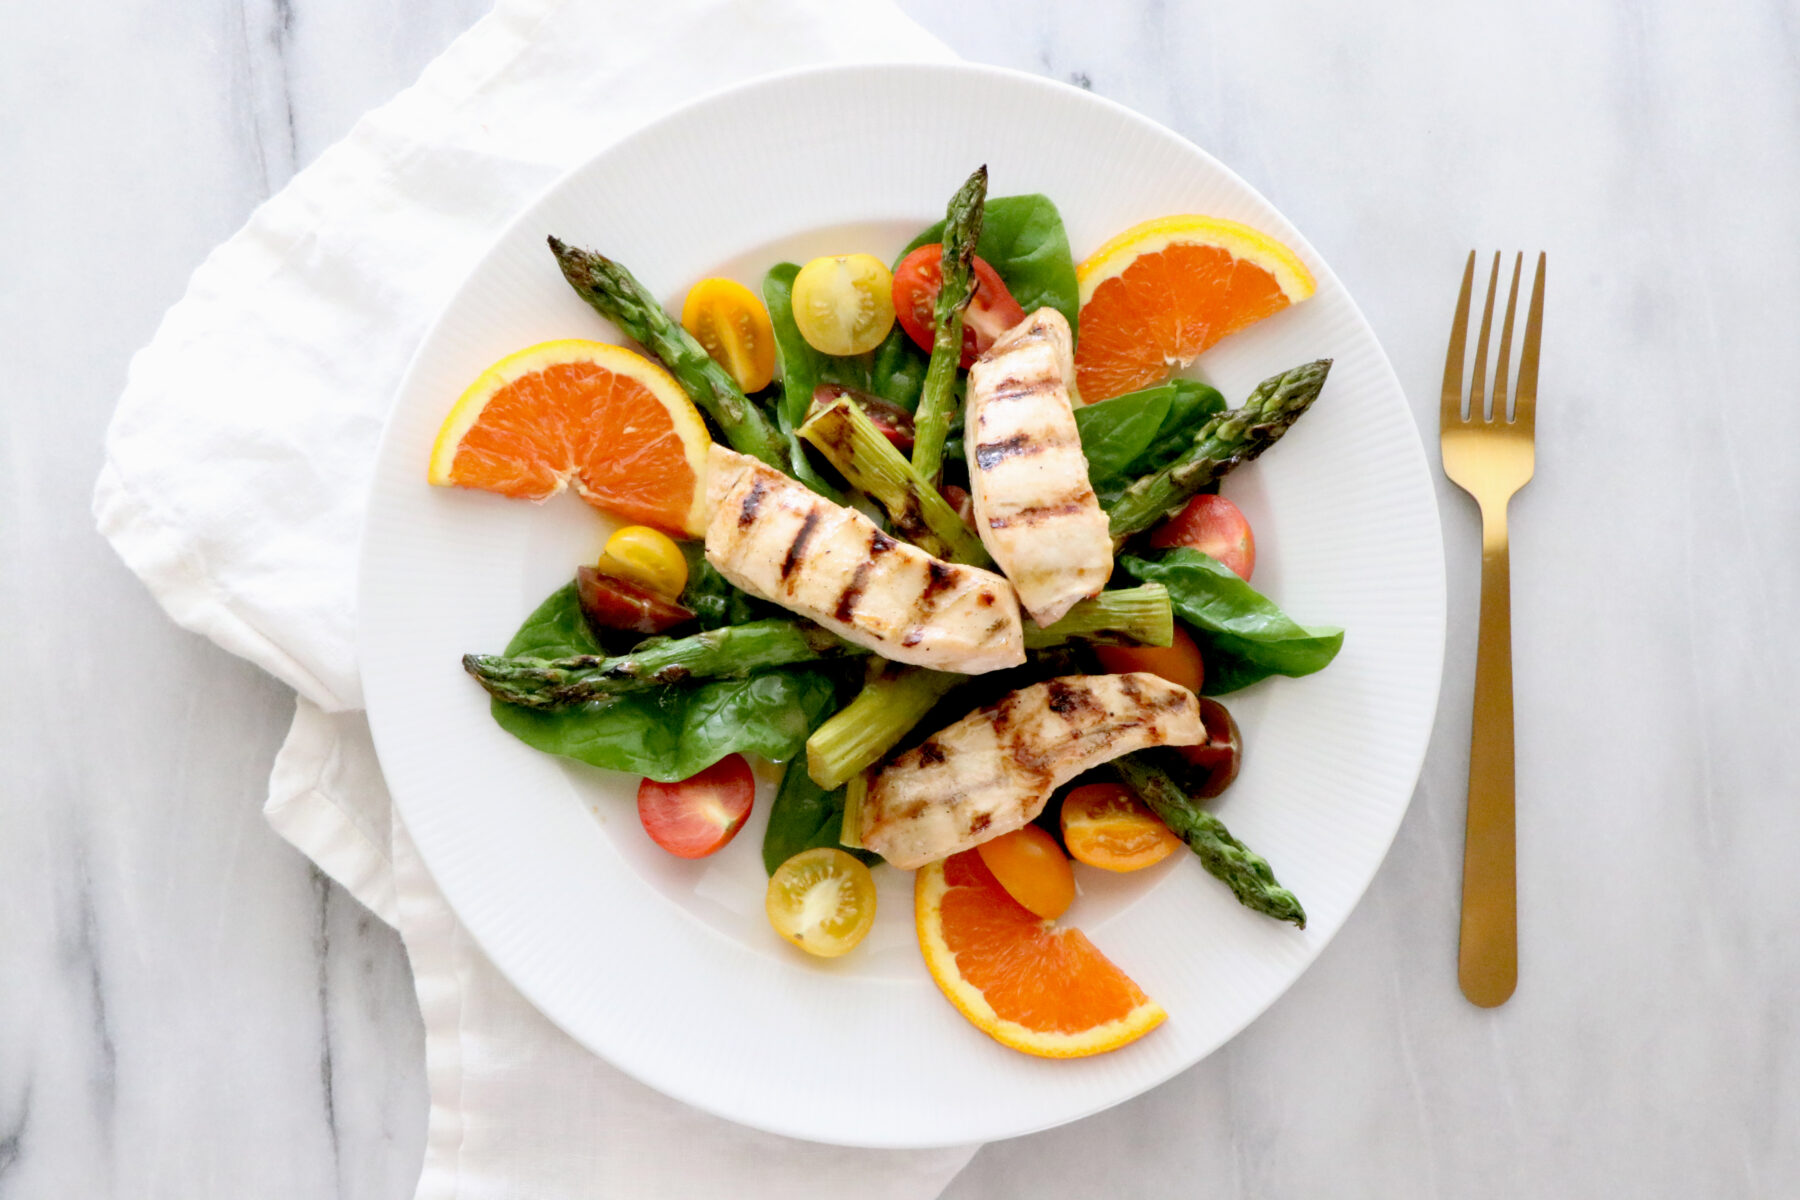 White plate of salad topped with asparagus, orange slices, tomatoes and grilled chicken. Gold fork on the right.